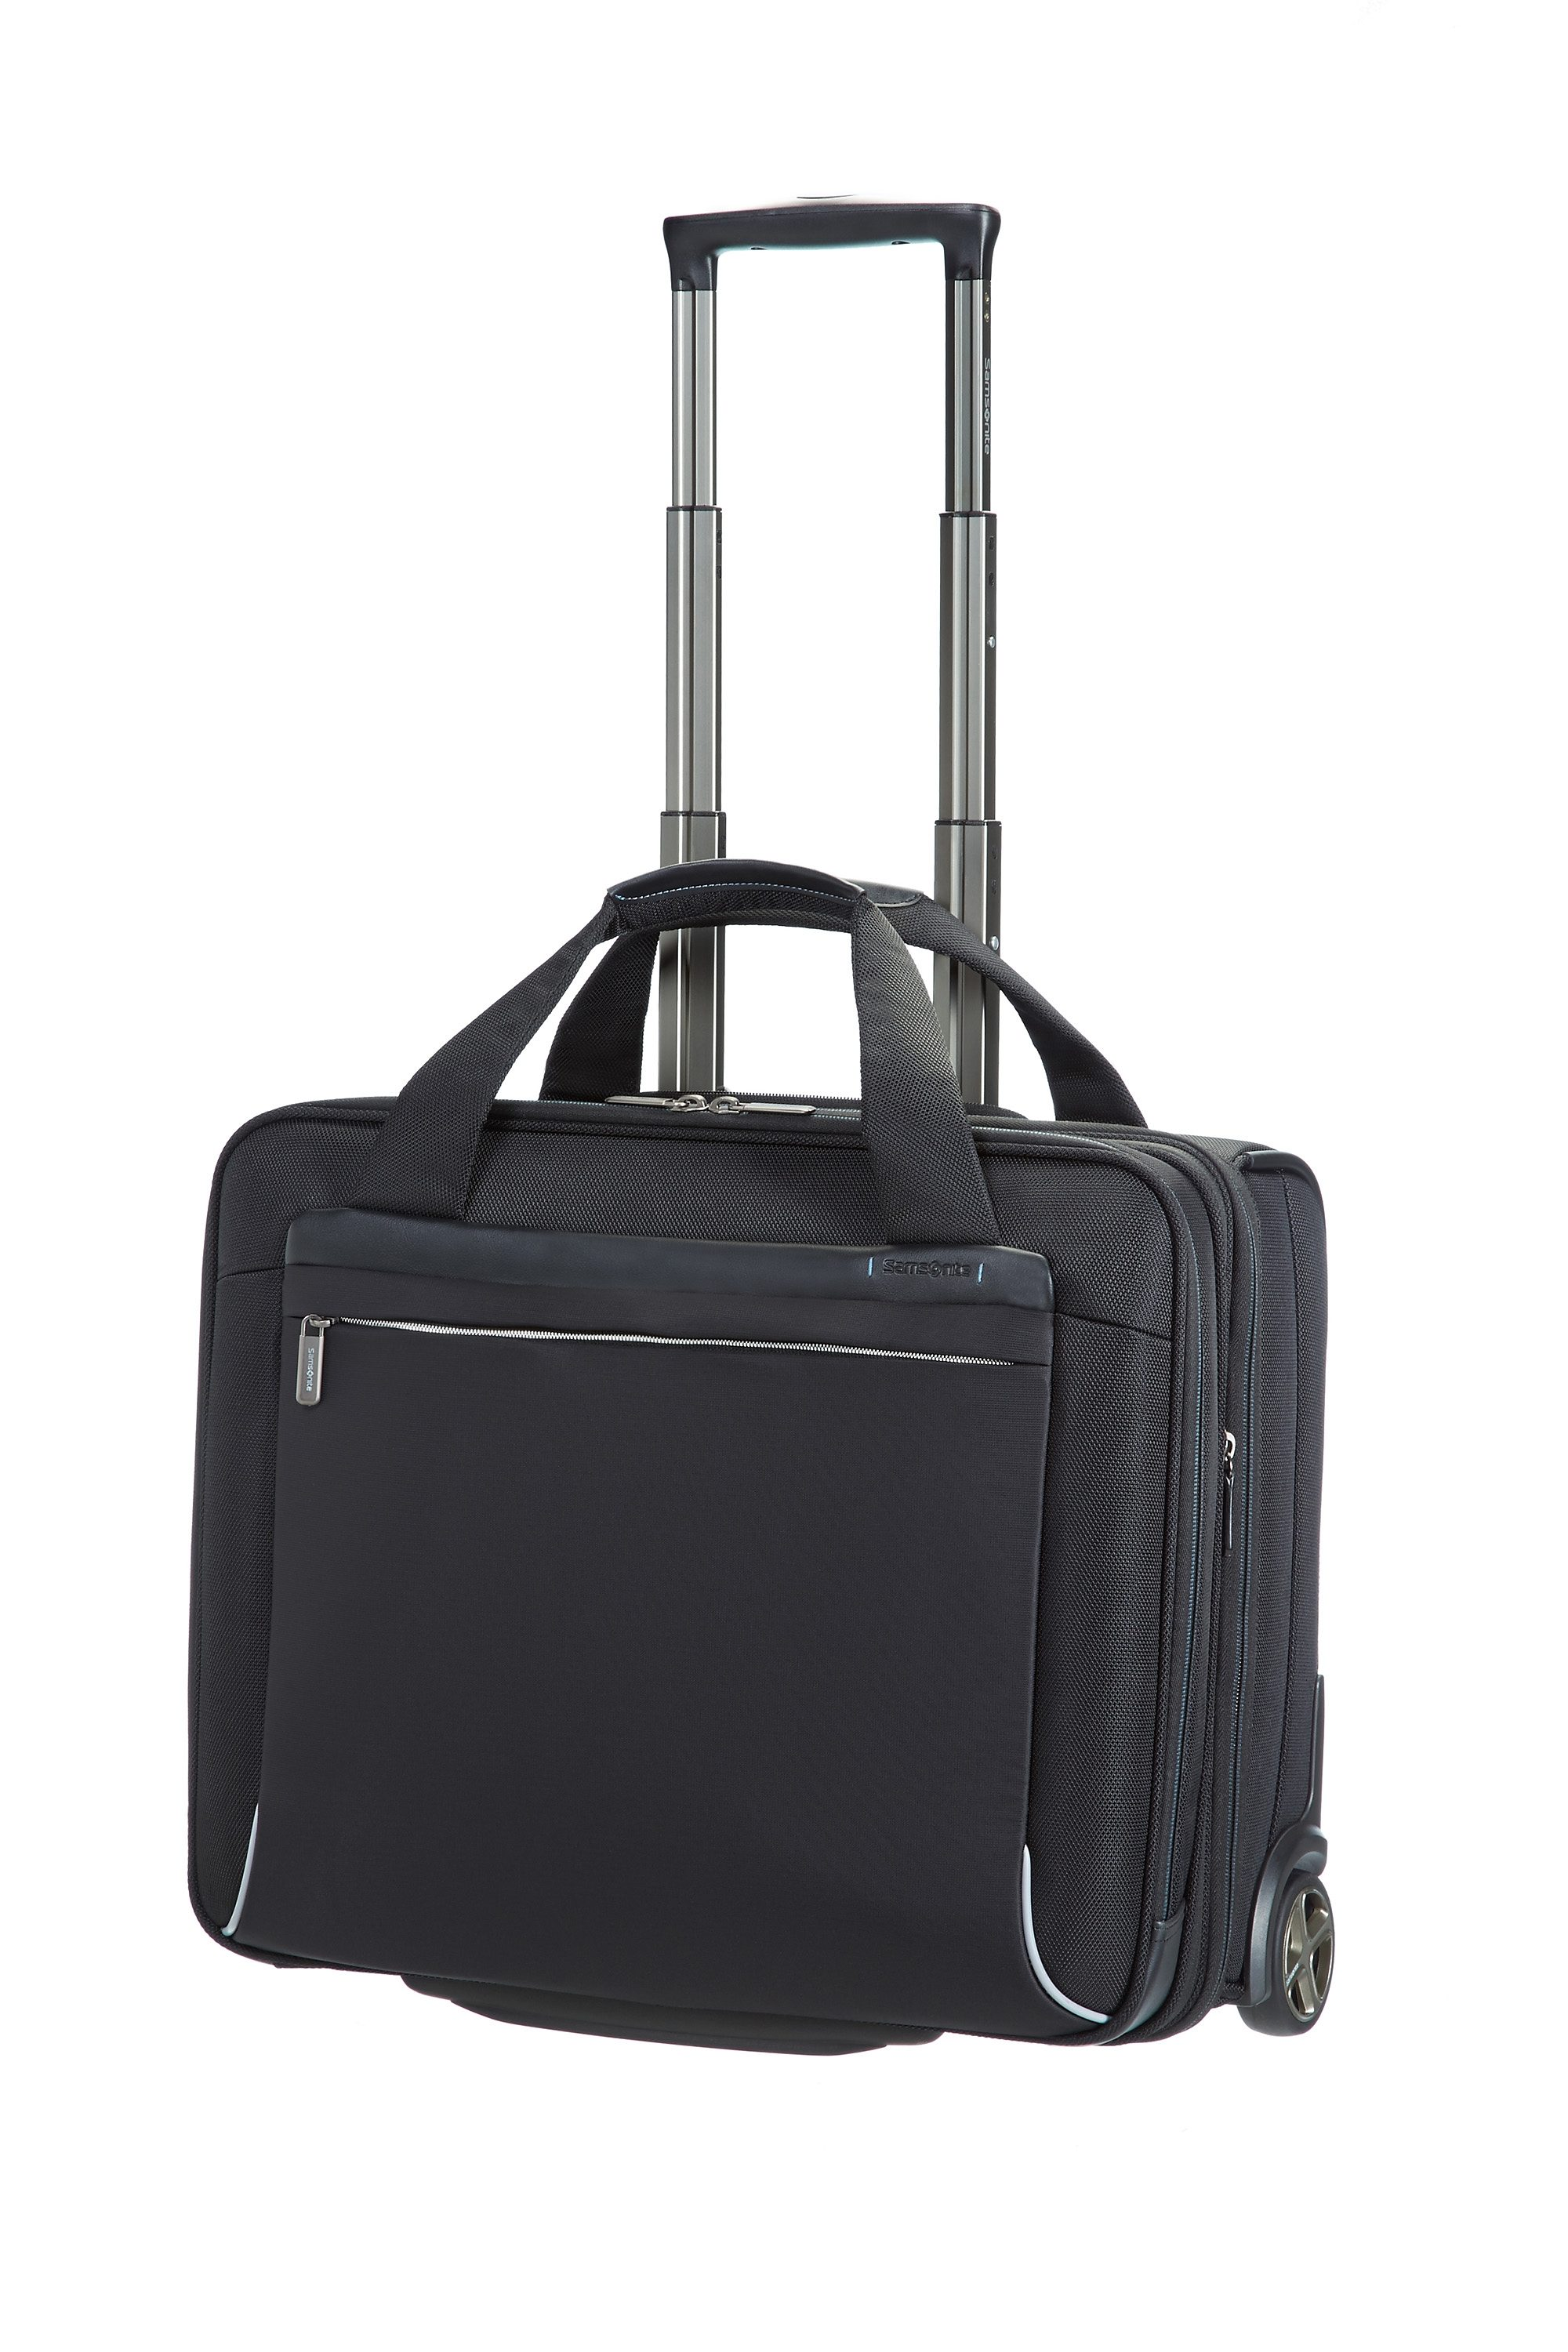 Samsonite Business Trolley mit 2 Rollen und 15,6-Zoll Laptopfach, »Ergo-Biz Rolling Tote«